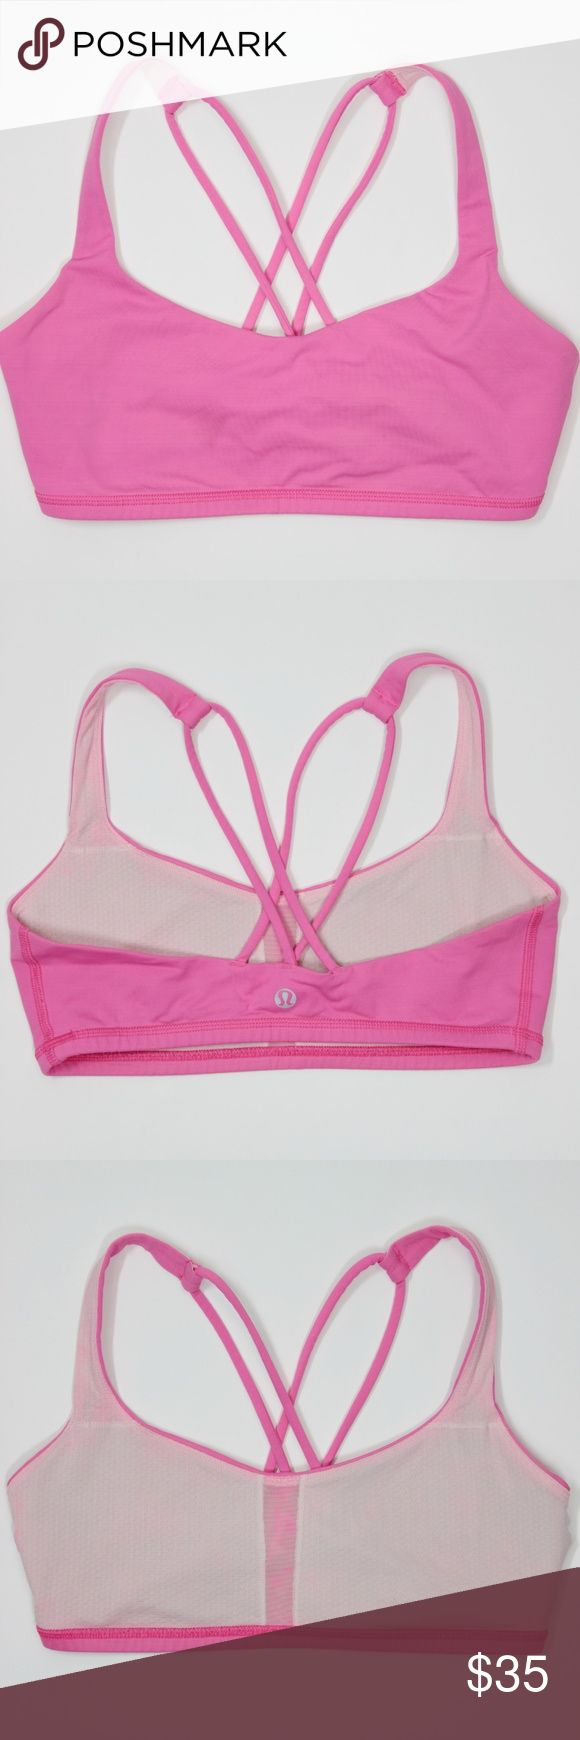 """Lululemon Free To Be Bra Pink Strappy Top Yoga Bra Lululemon Women's Top Free To Be Bra Pink Strappy Workout Run Yoga Sports Bra Hot Pink Size: 6  Pit to Pit: 13.5""""  Condition: Good, has color bleed in the interior lining, but does not affect the integrity of the garment! Comes from a pet and smoke free environment!  Care: Machine Wash WT: 0.05 SKU: 574; 2 Measurements are approximate and taken flat. lululemon athletica Tops"""